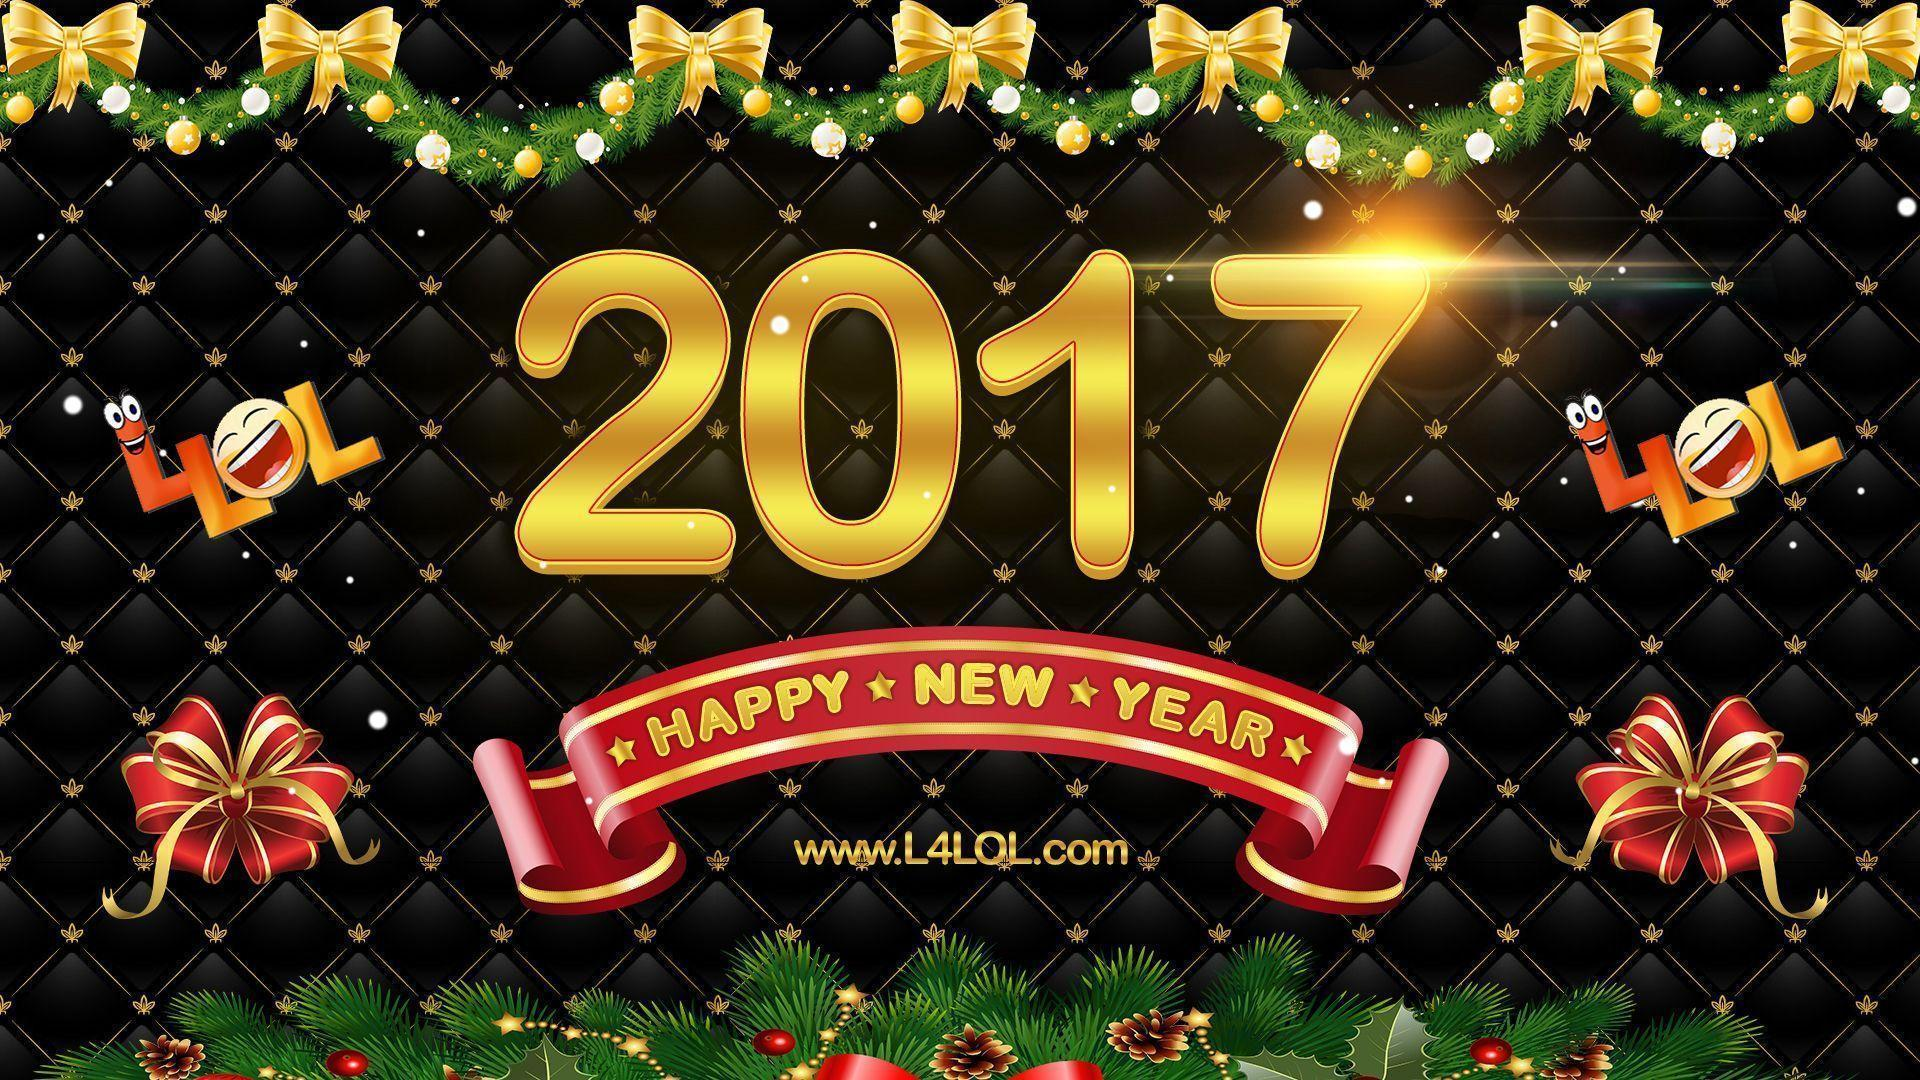 New Year Wishes 2017 Wallpapers Hd Wallpaper Cave